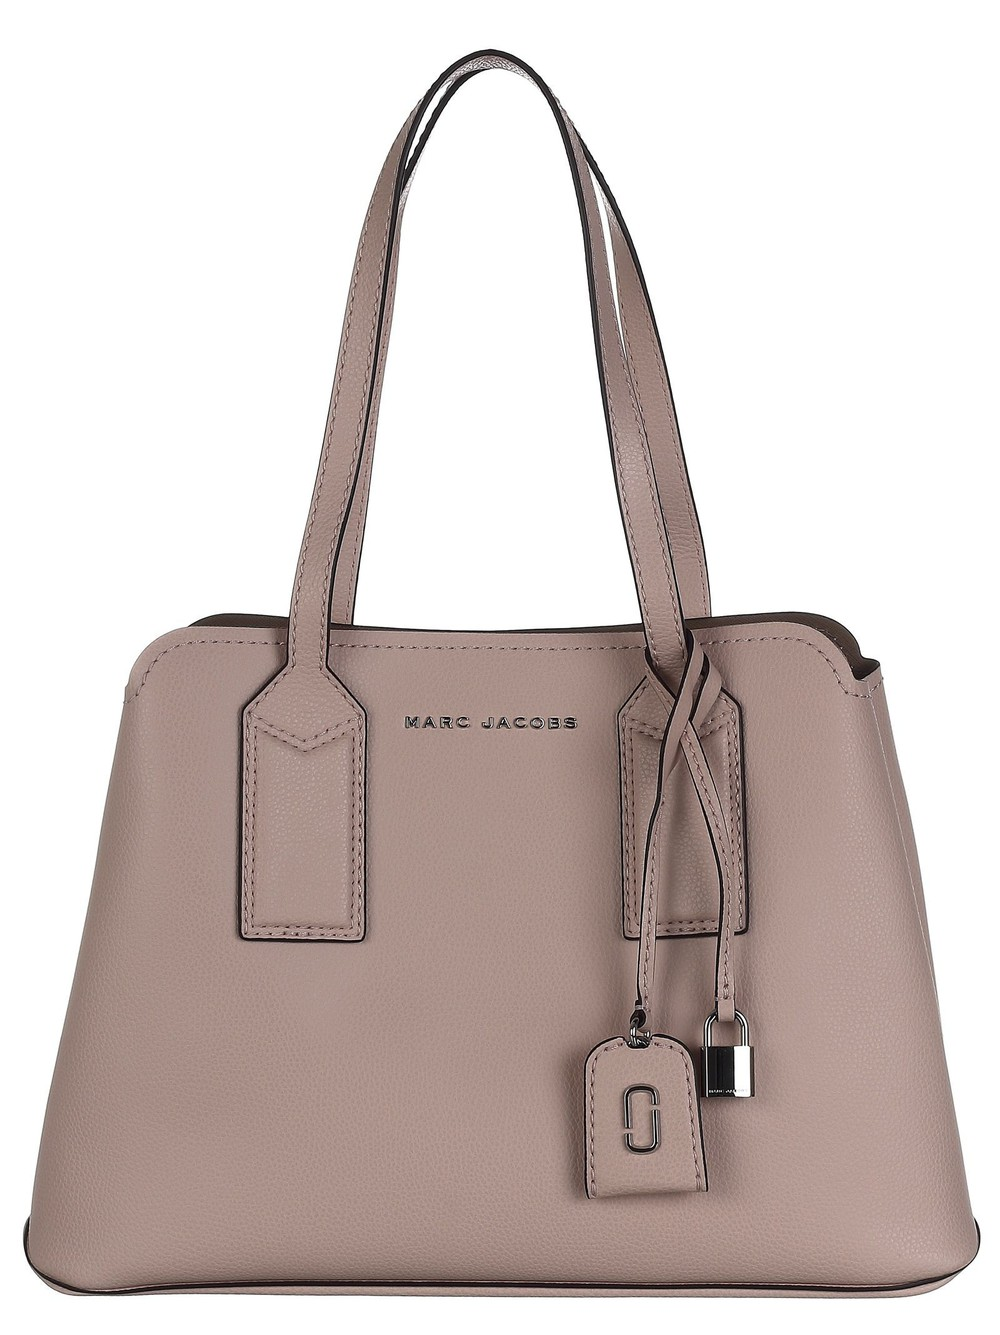 Marc Jacobs The Editor Tote in pink